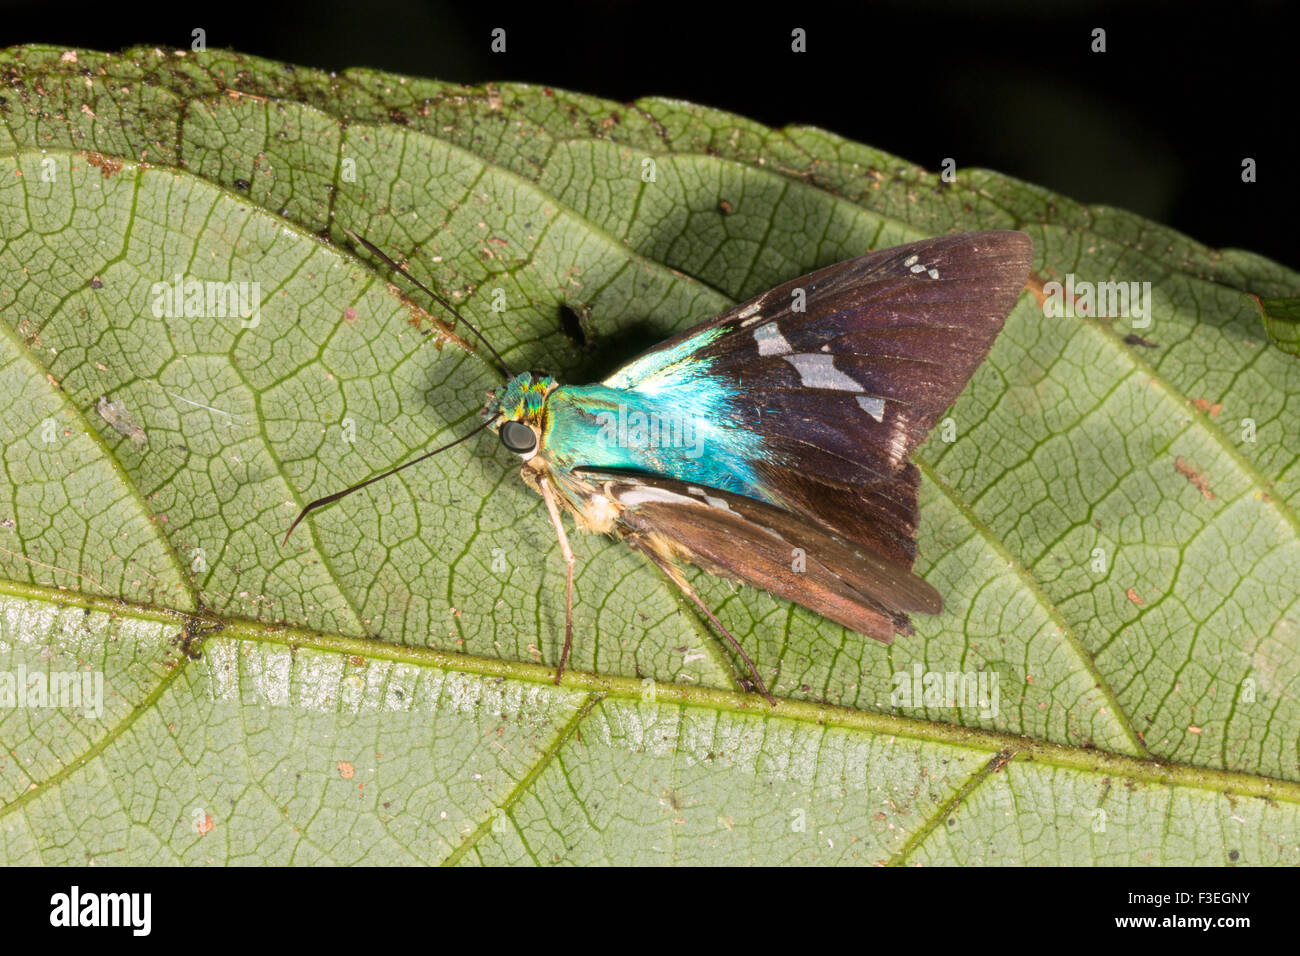 Skipper butterfly (Family Hesperidae) on a leaf in the rainforest, Ecuador Stock Photo